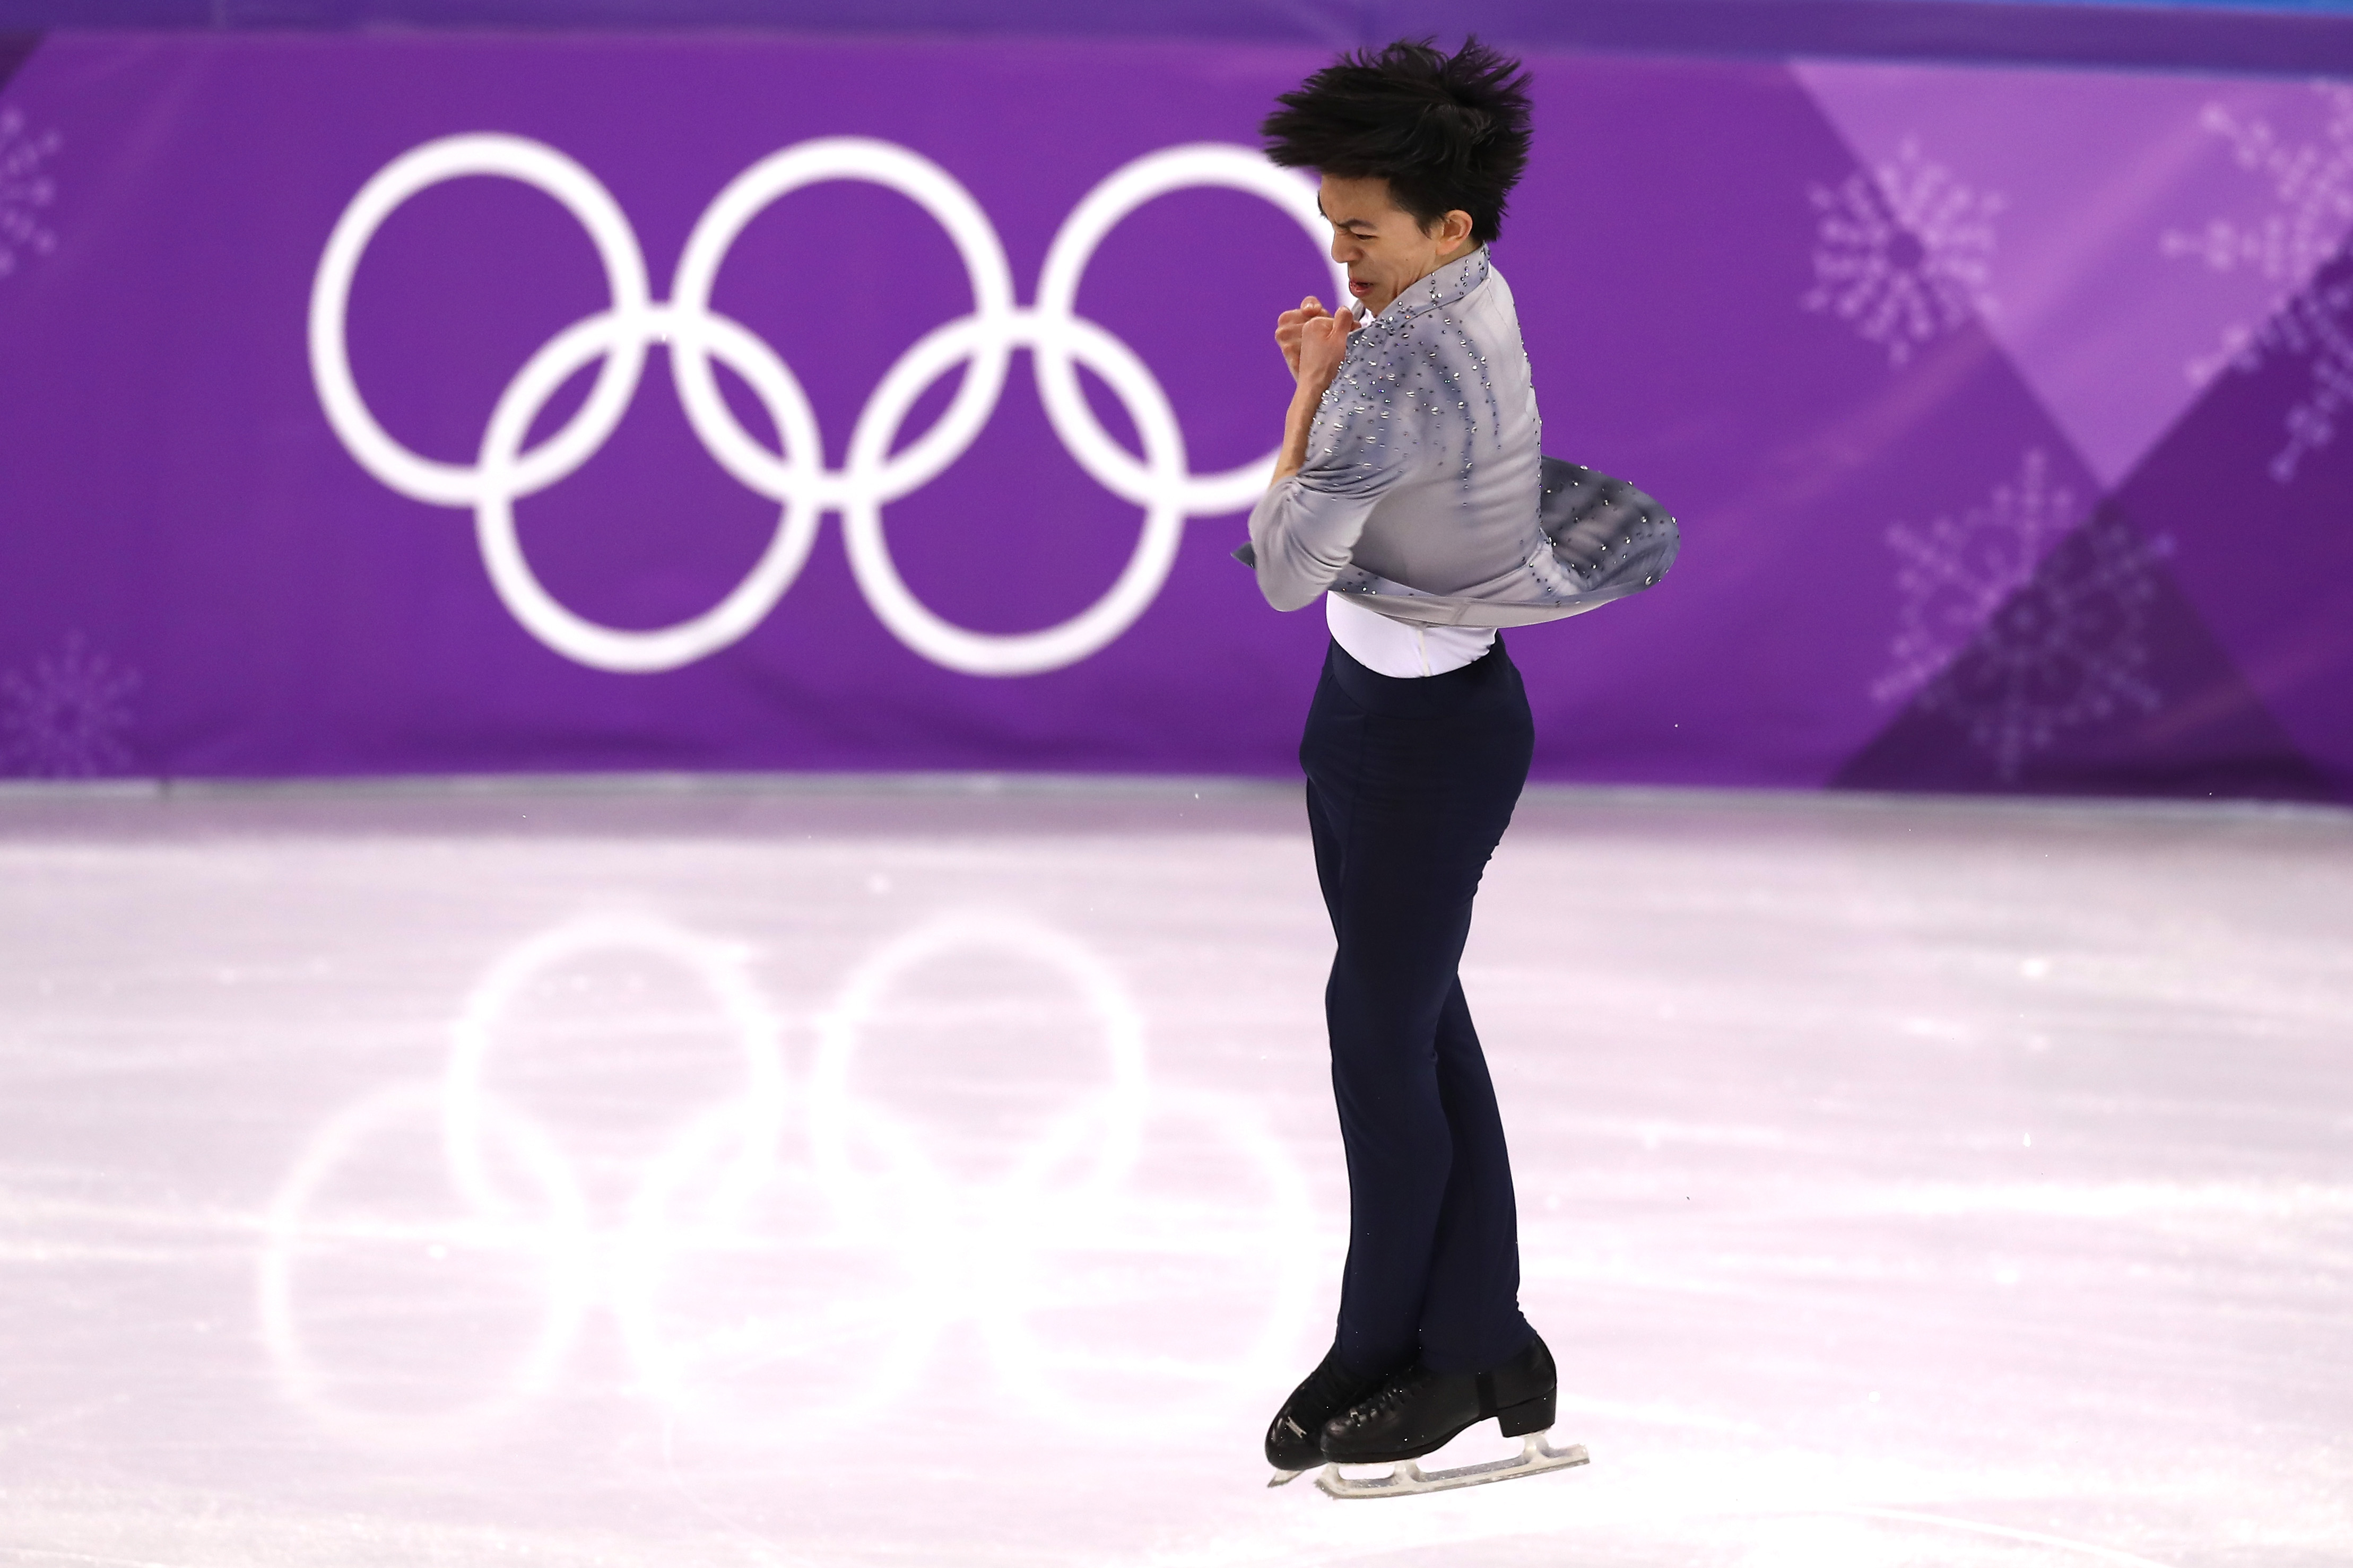 Vincent Zhou of the United States competes during the Men's Single Skating Short Program at Gangneung Ice Arena on Feb. 16, 2018 in Gangneung, South Korea.